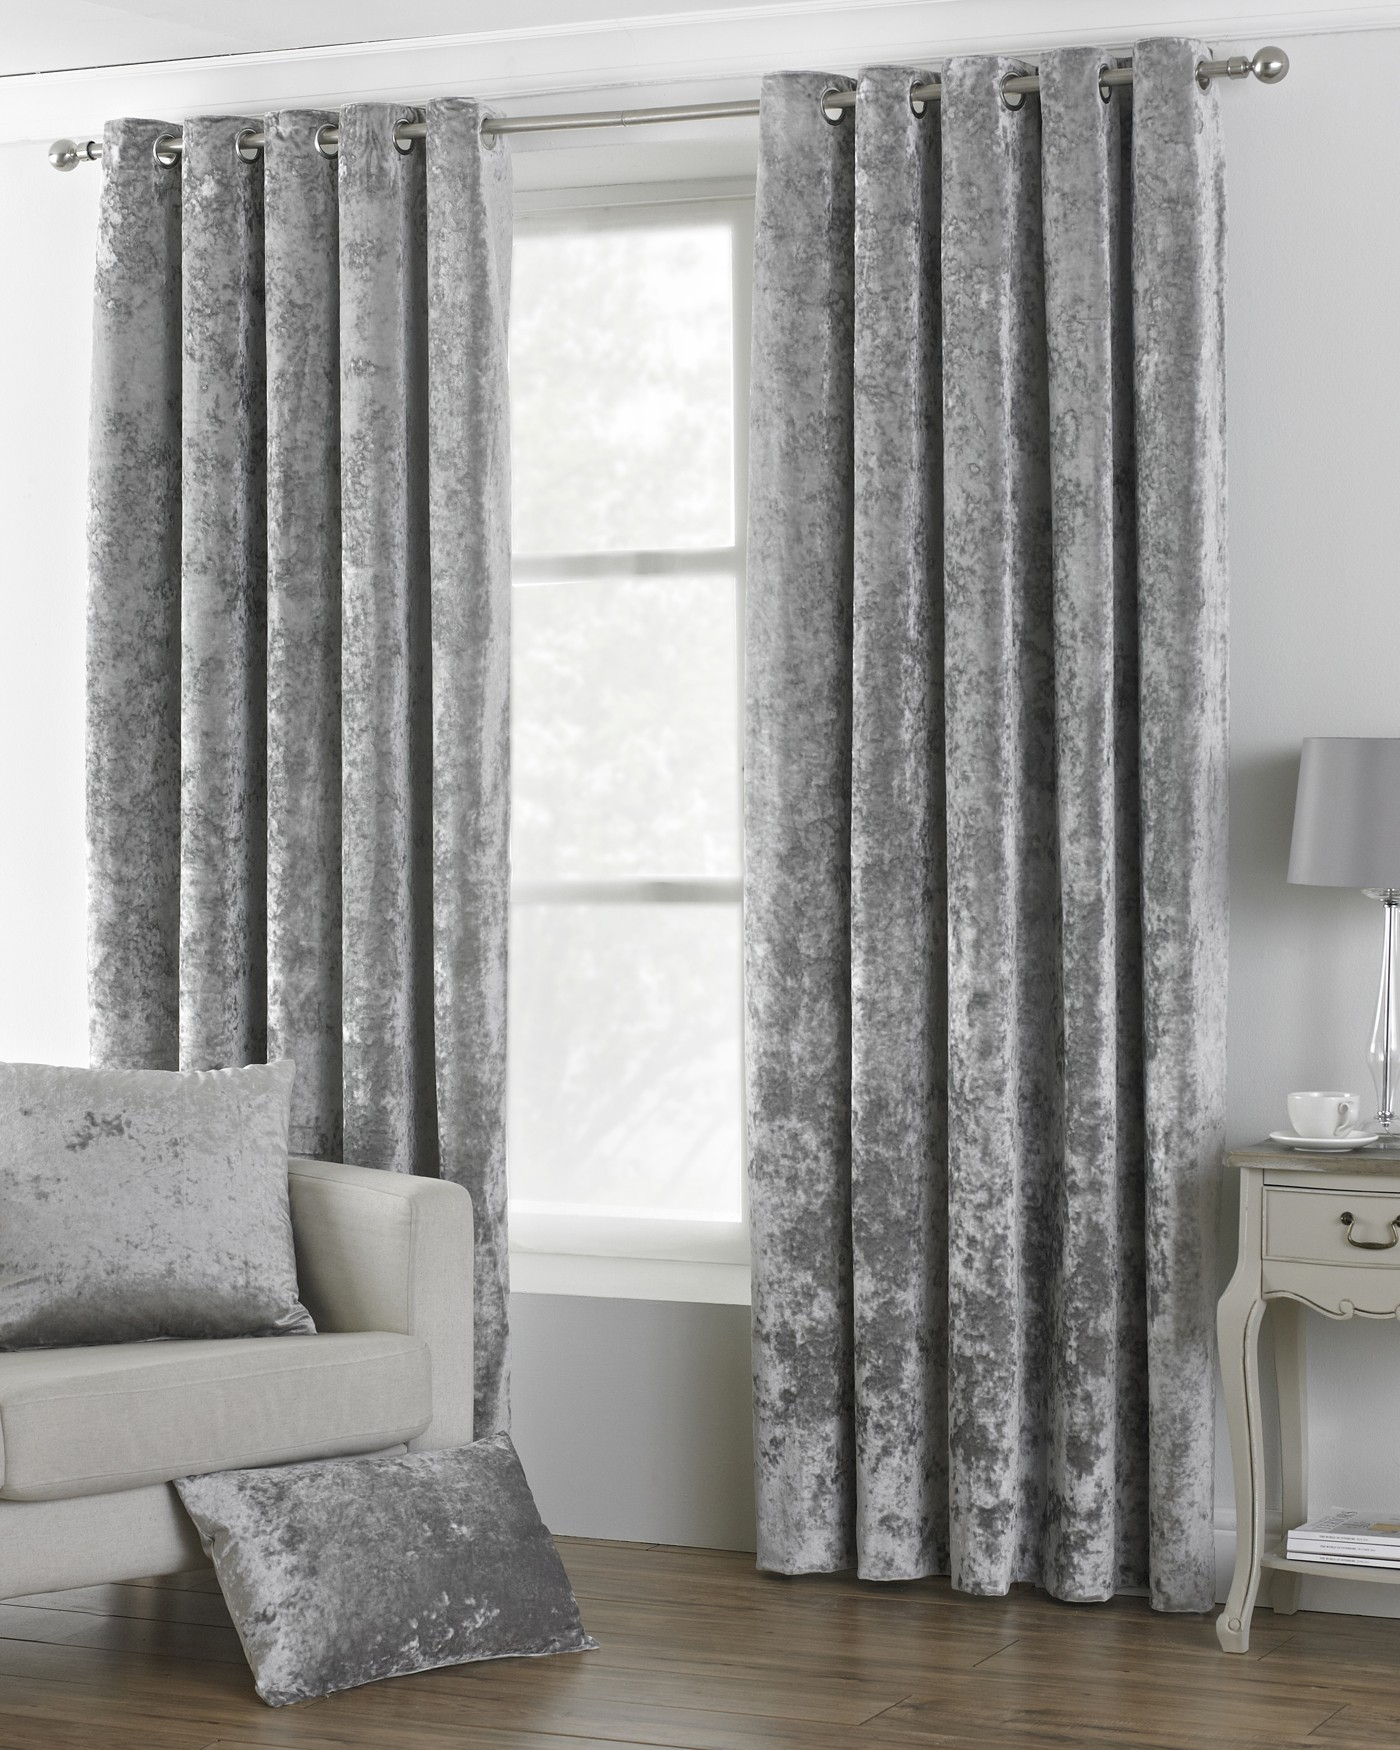 The Home Furnishings Company Verona Silver Velvet Curtains/Furnishings